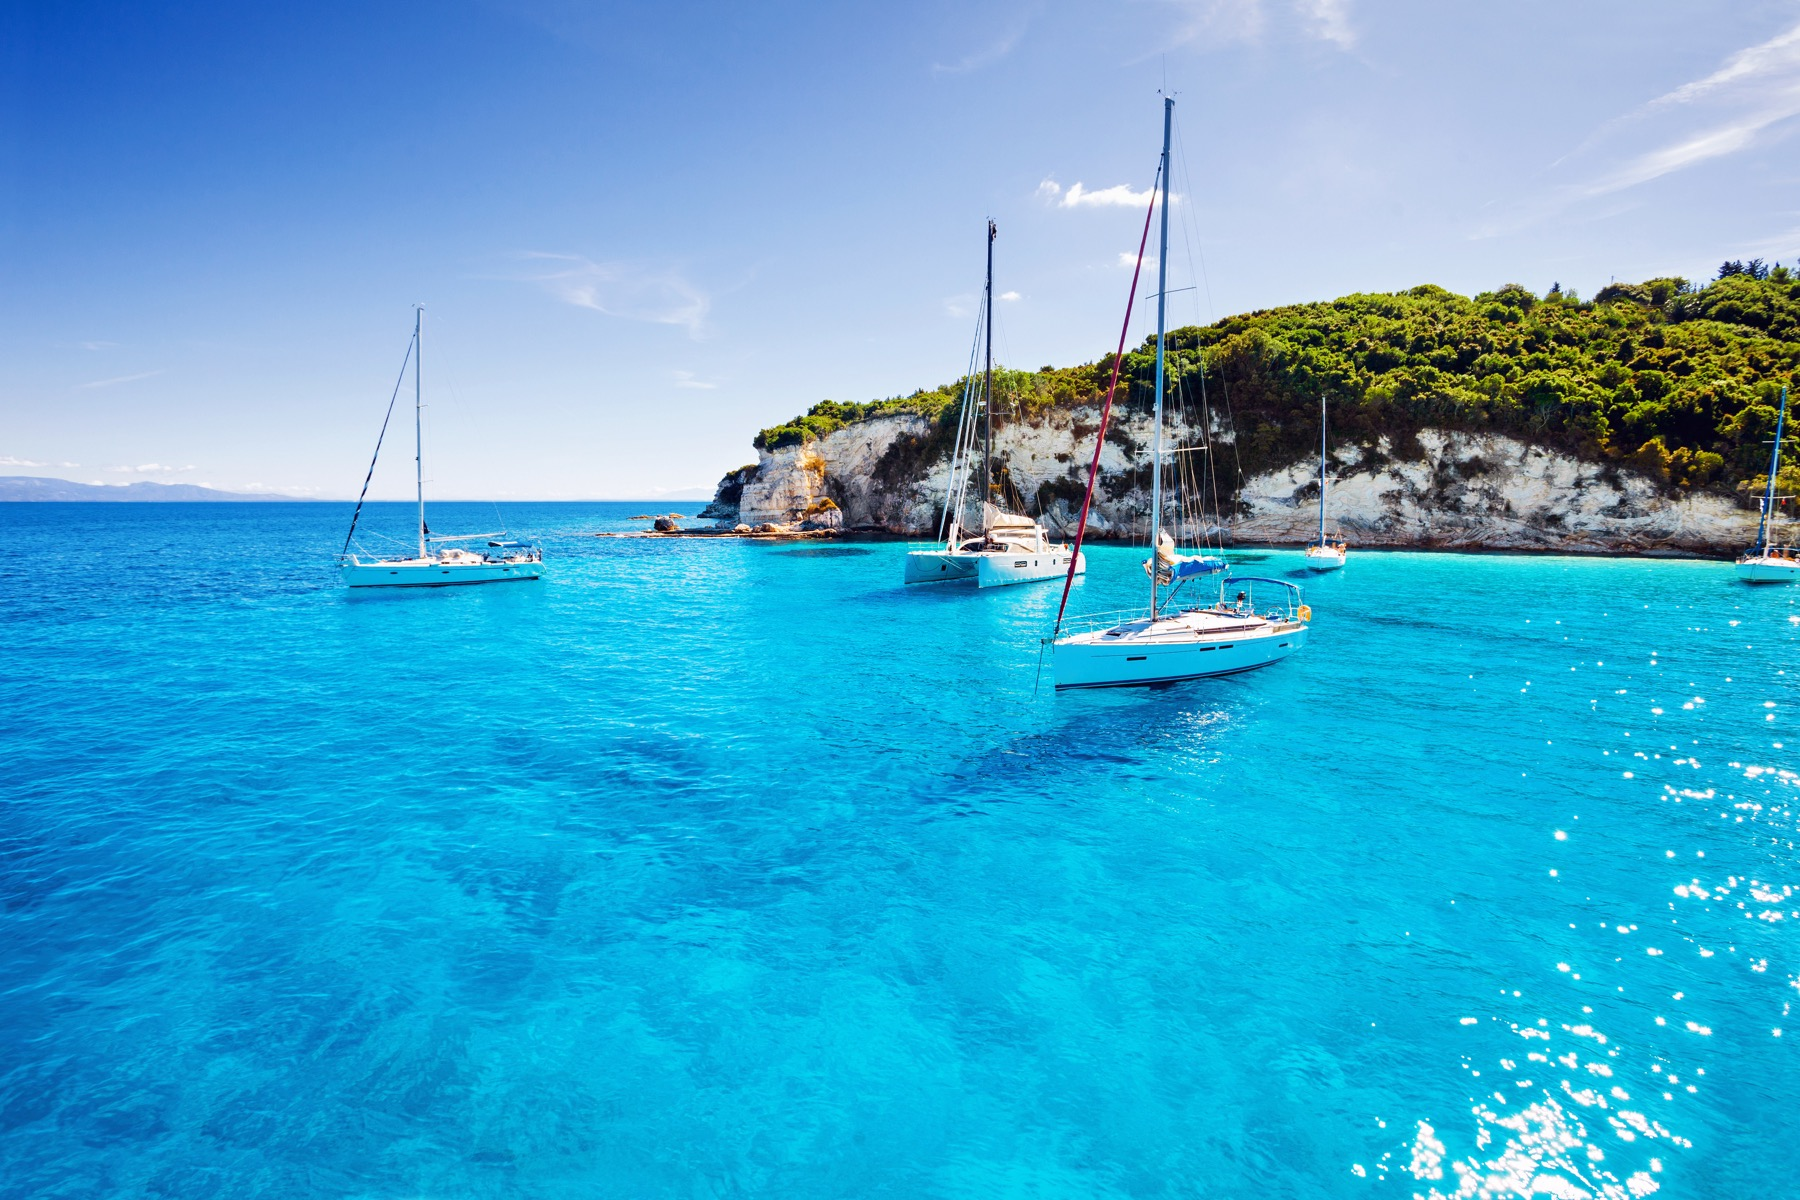 The Best Sailing Season in Greece